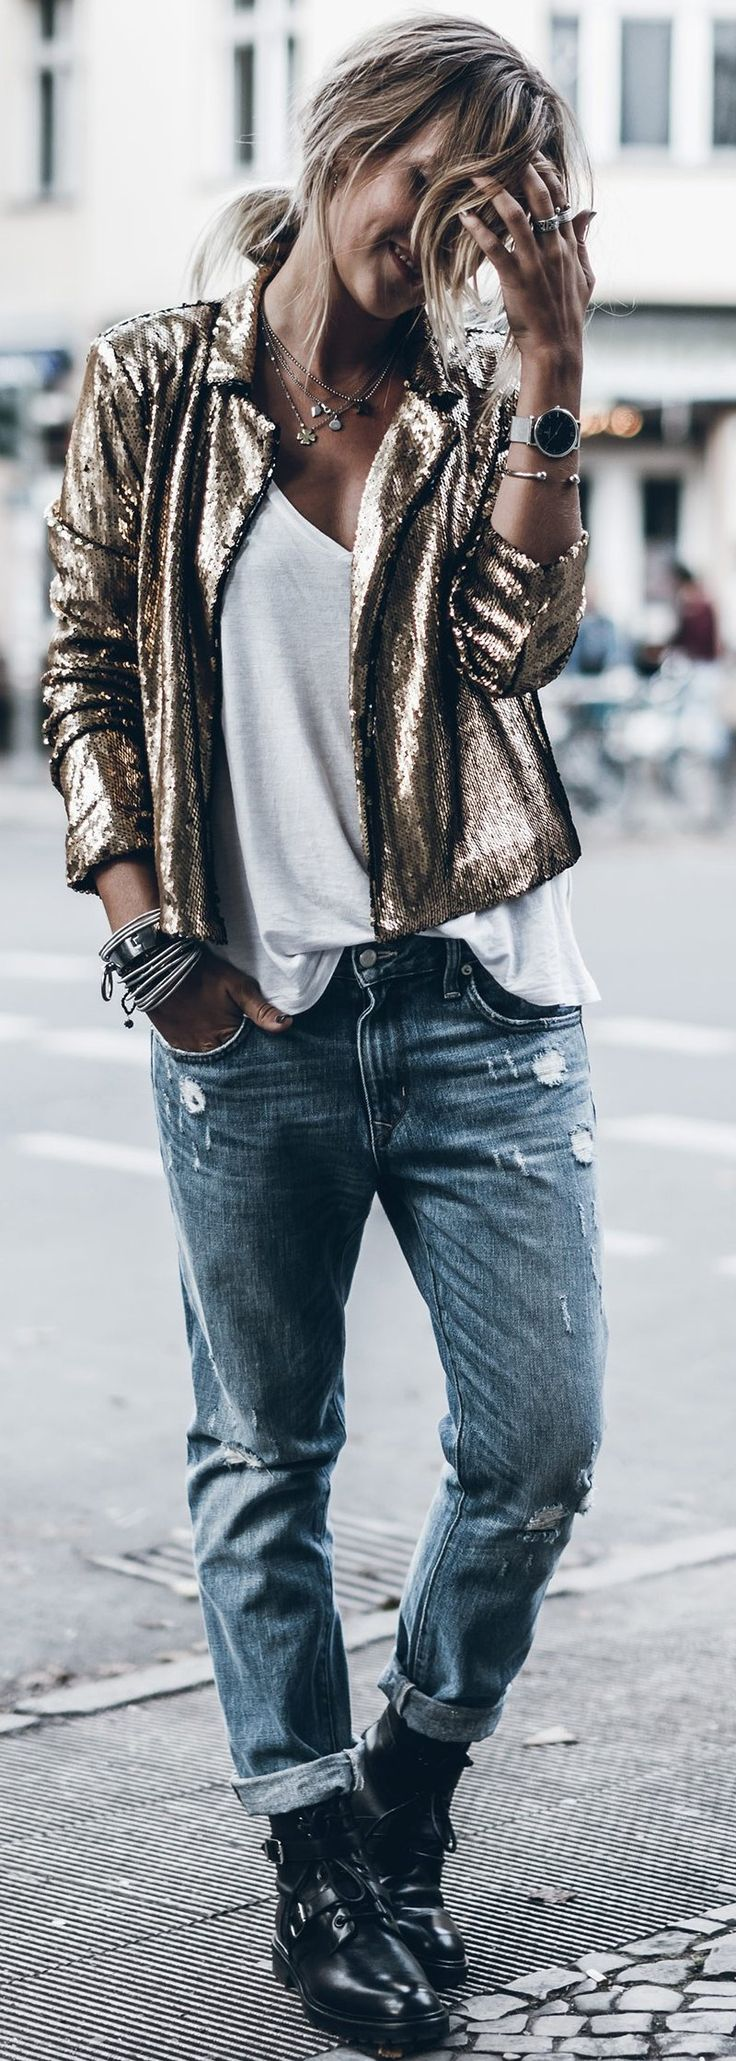 Gold Sequins + Basics                                                                             Source